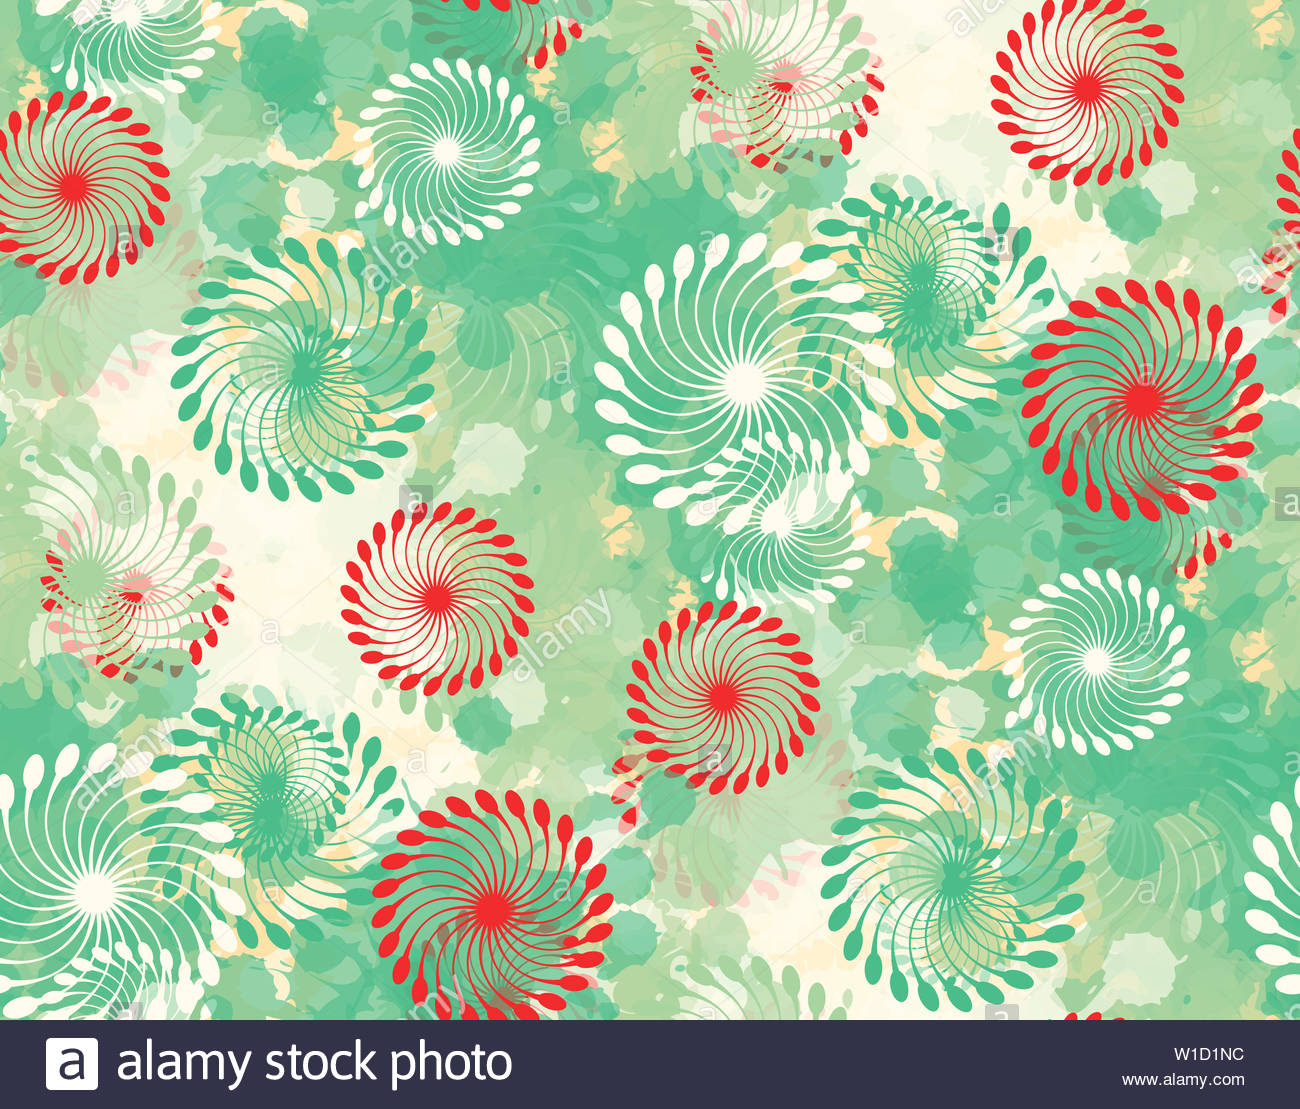 Abstract Floral Wallpaper Pattern With Helix Flowers In Green Red